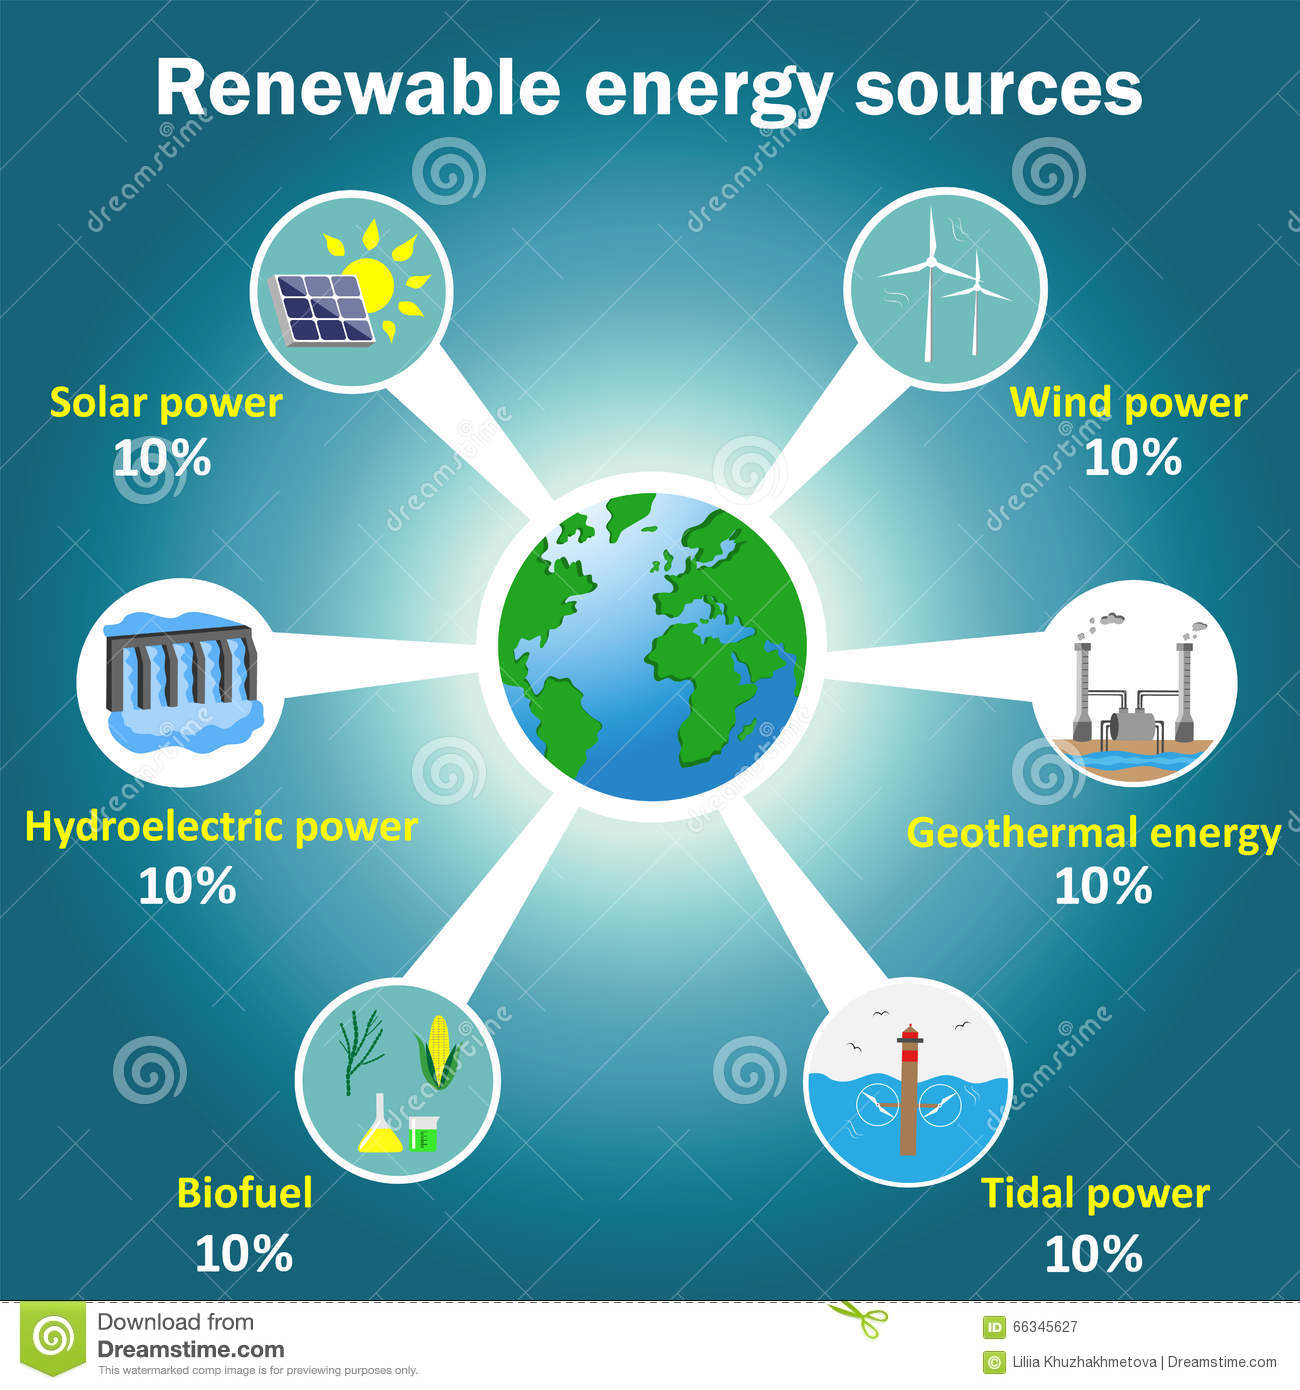 renewable energy sources vector infographics solar wind tidal hydroelectric geothermal power biofuel 66345627